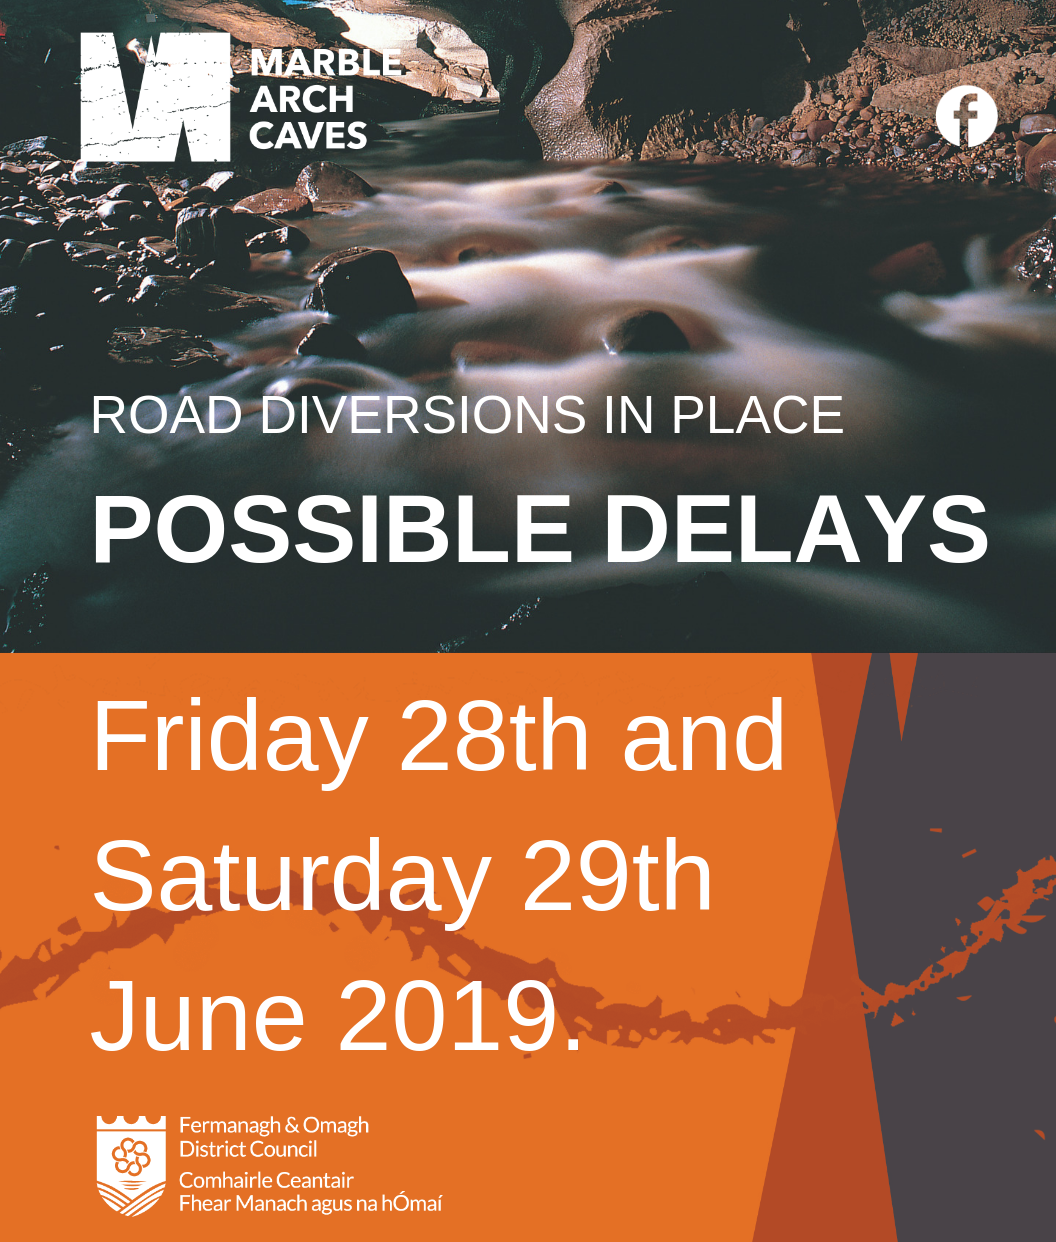 Possible delays road diversions in place 28 and 29 June